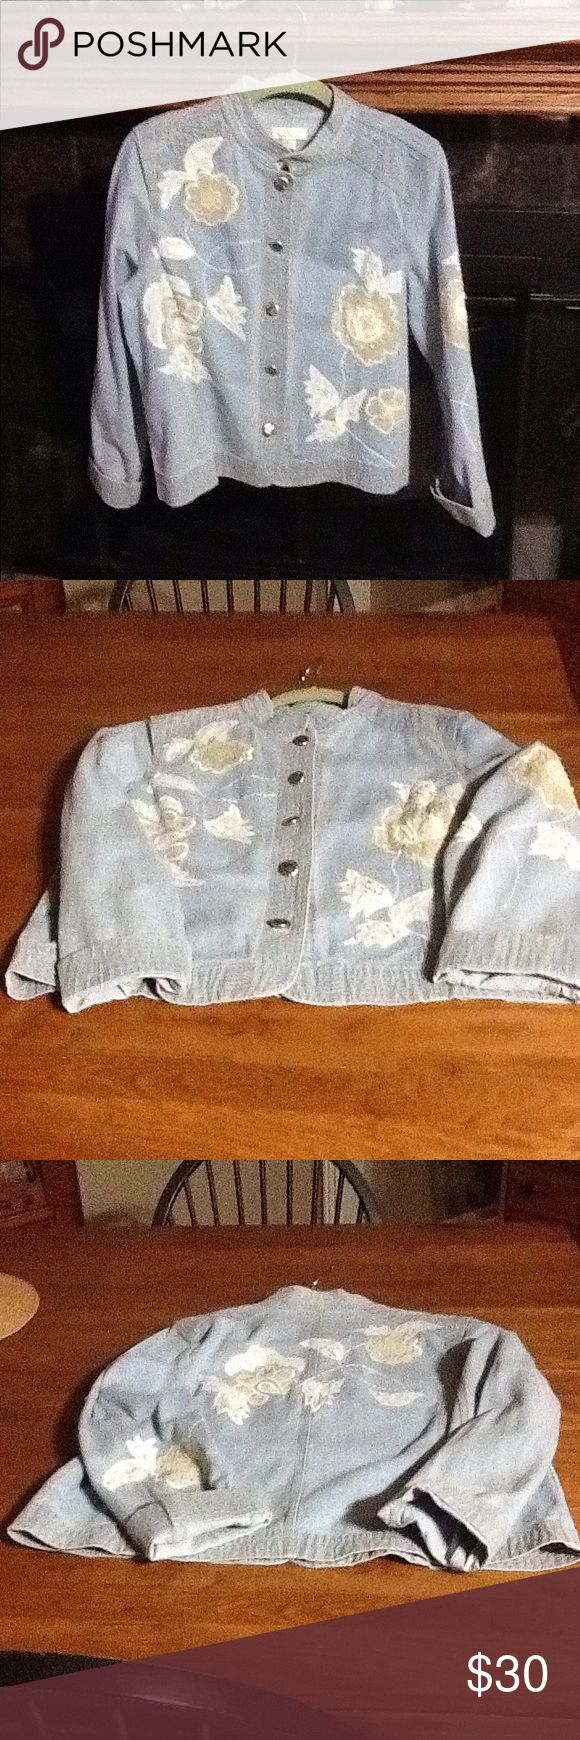 Christopher Banks Ladies Embroider Denim Jacket Christopher Banks Floral embroidered with small sequins on light blue denim jacket. Jacket is in excellent condition. Buttons are decorate silver . Christopher & Banks Jackets & Coats Jean Jackets